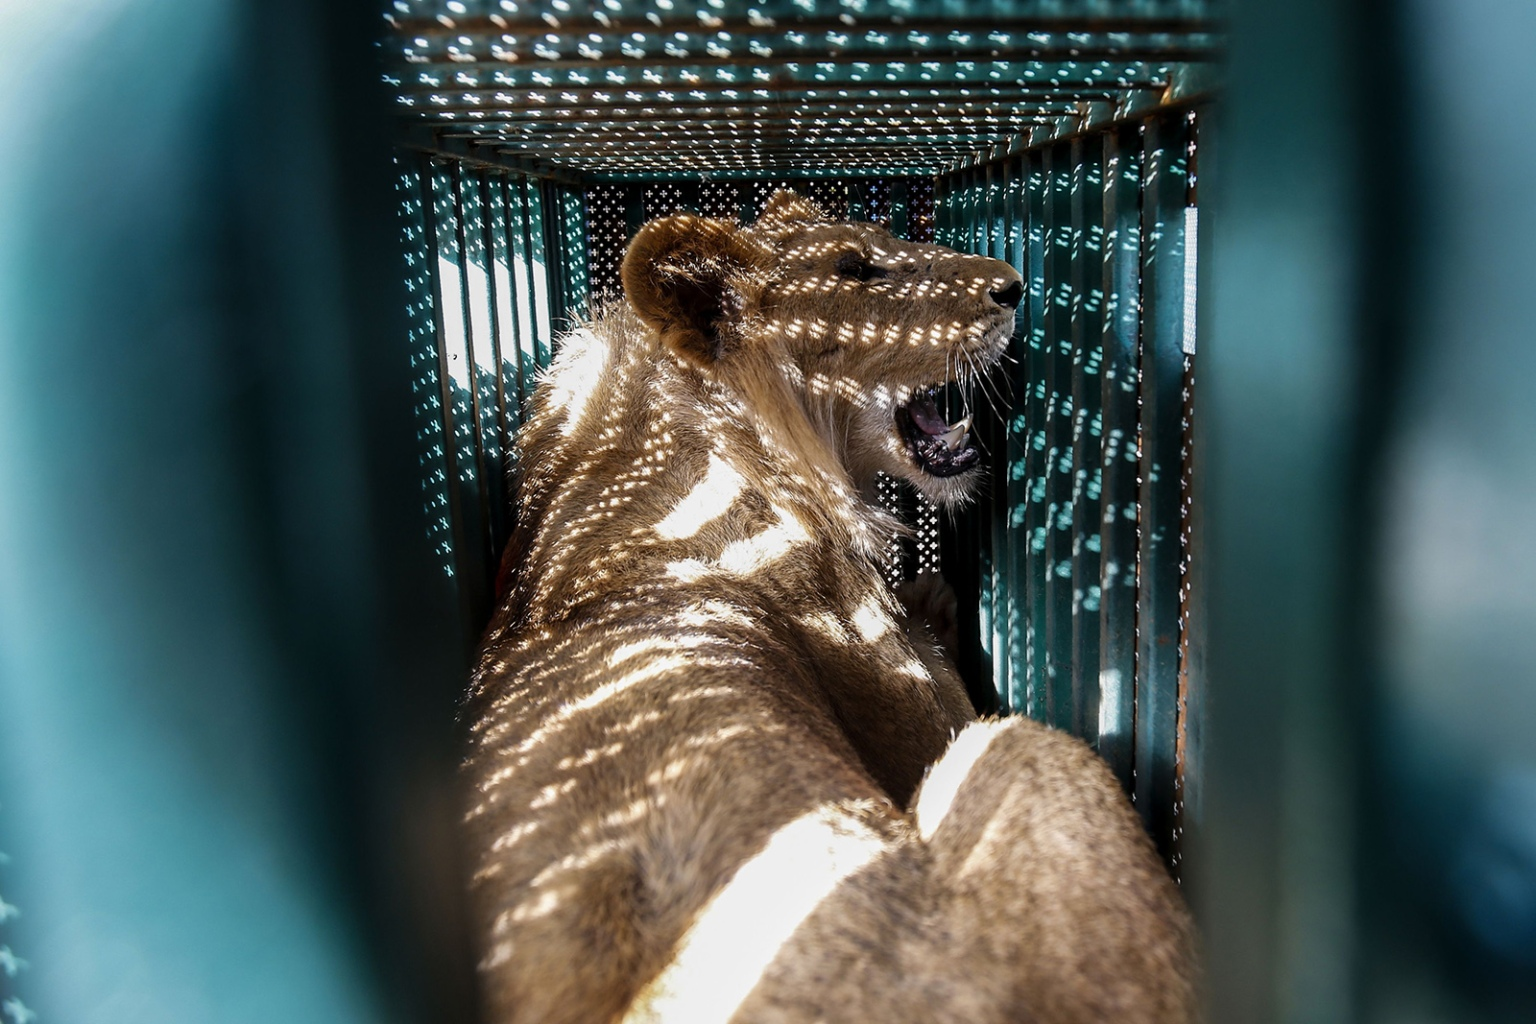 A sedated lioness rests in a cage at a zoo in Rafah in the southern Gaza Strip during her evacuation to a sanctuary in Jordan on April 7. Forty animals, including five lions, were rescued from squalid conditions, according to the international animal welfare charity Four Paws SAID KHATIB/AFP/Getty Images